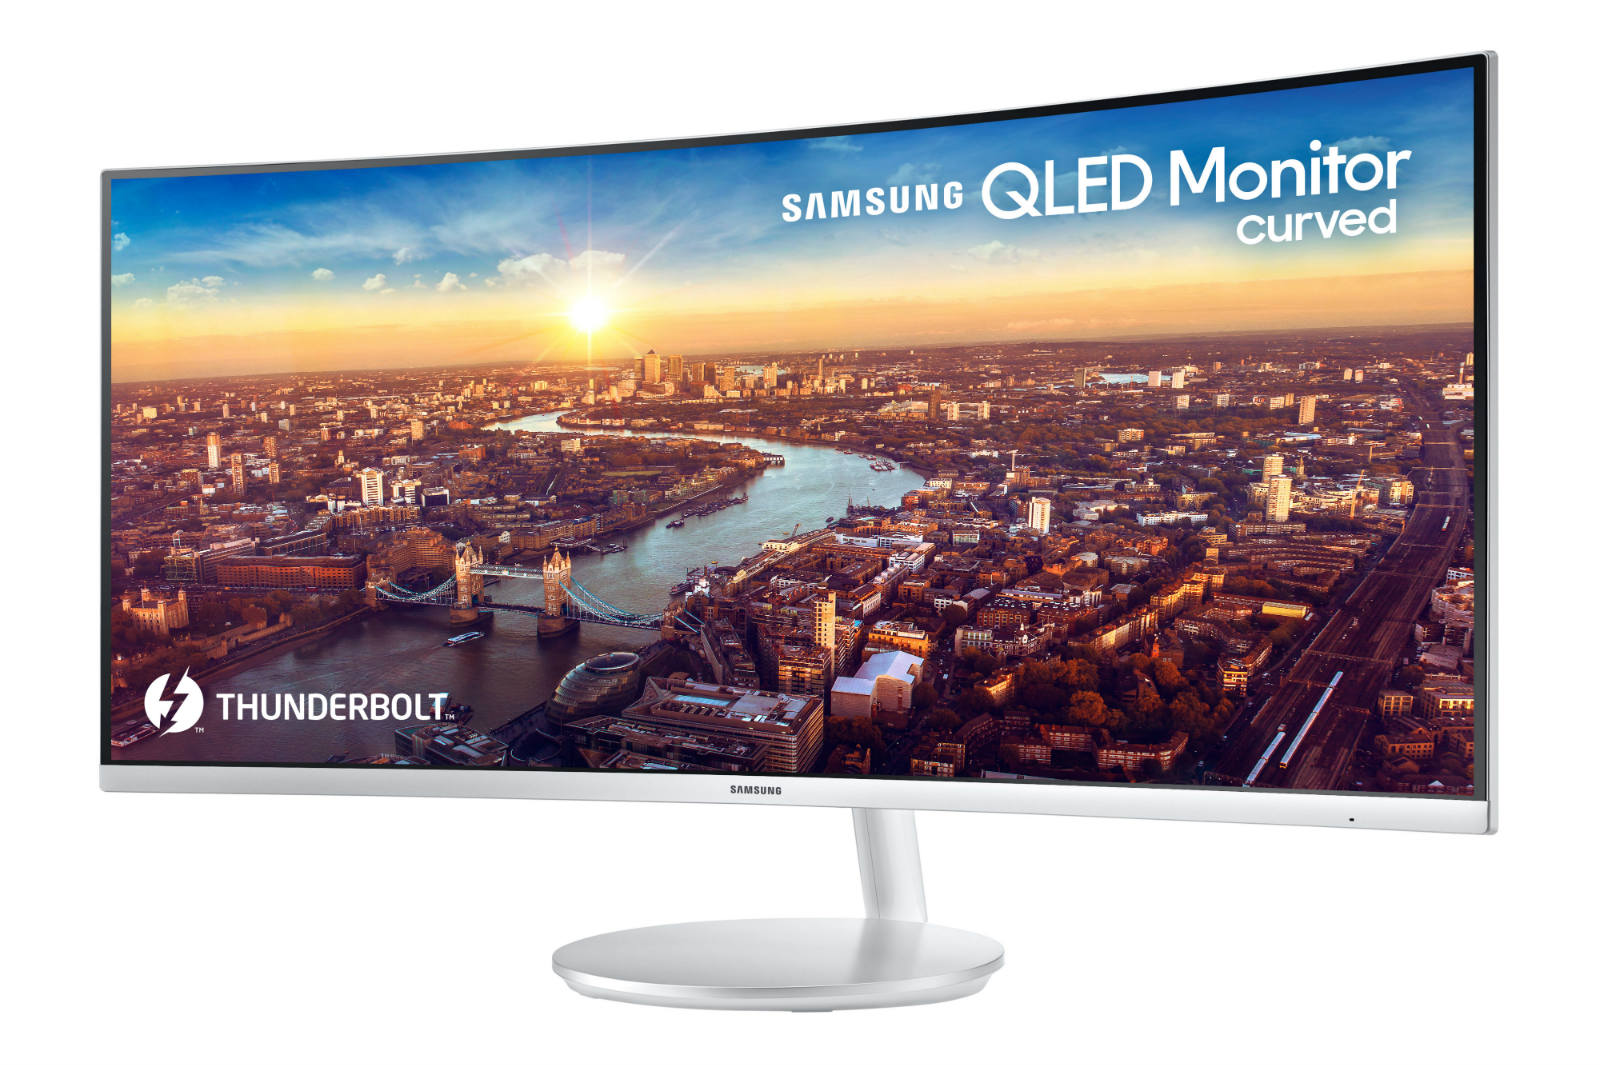 Samsung's latest curved QLED monitor packs Thunderbolt 3